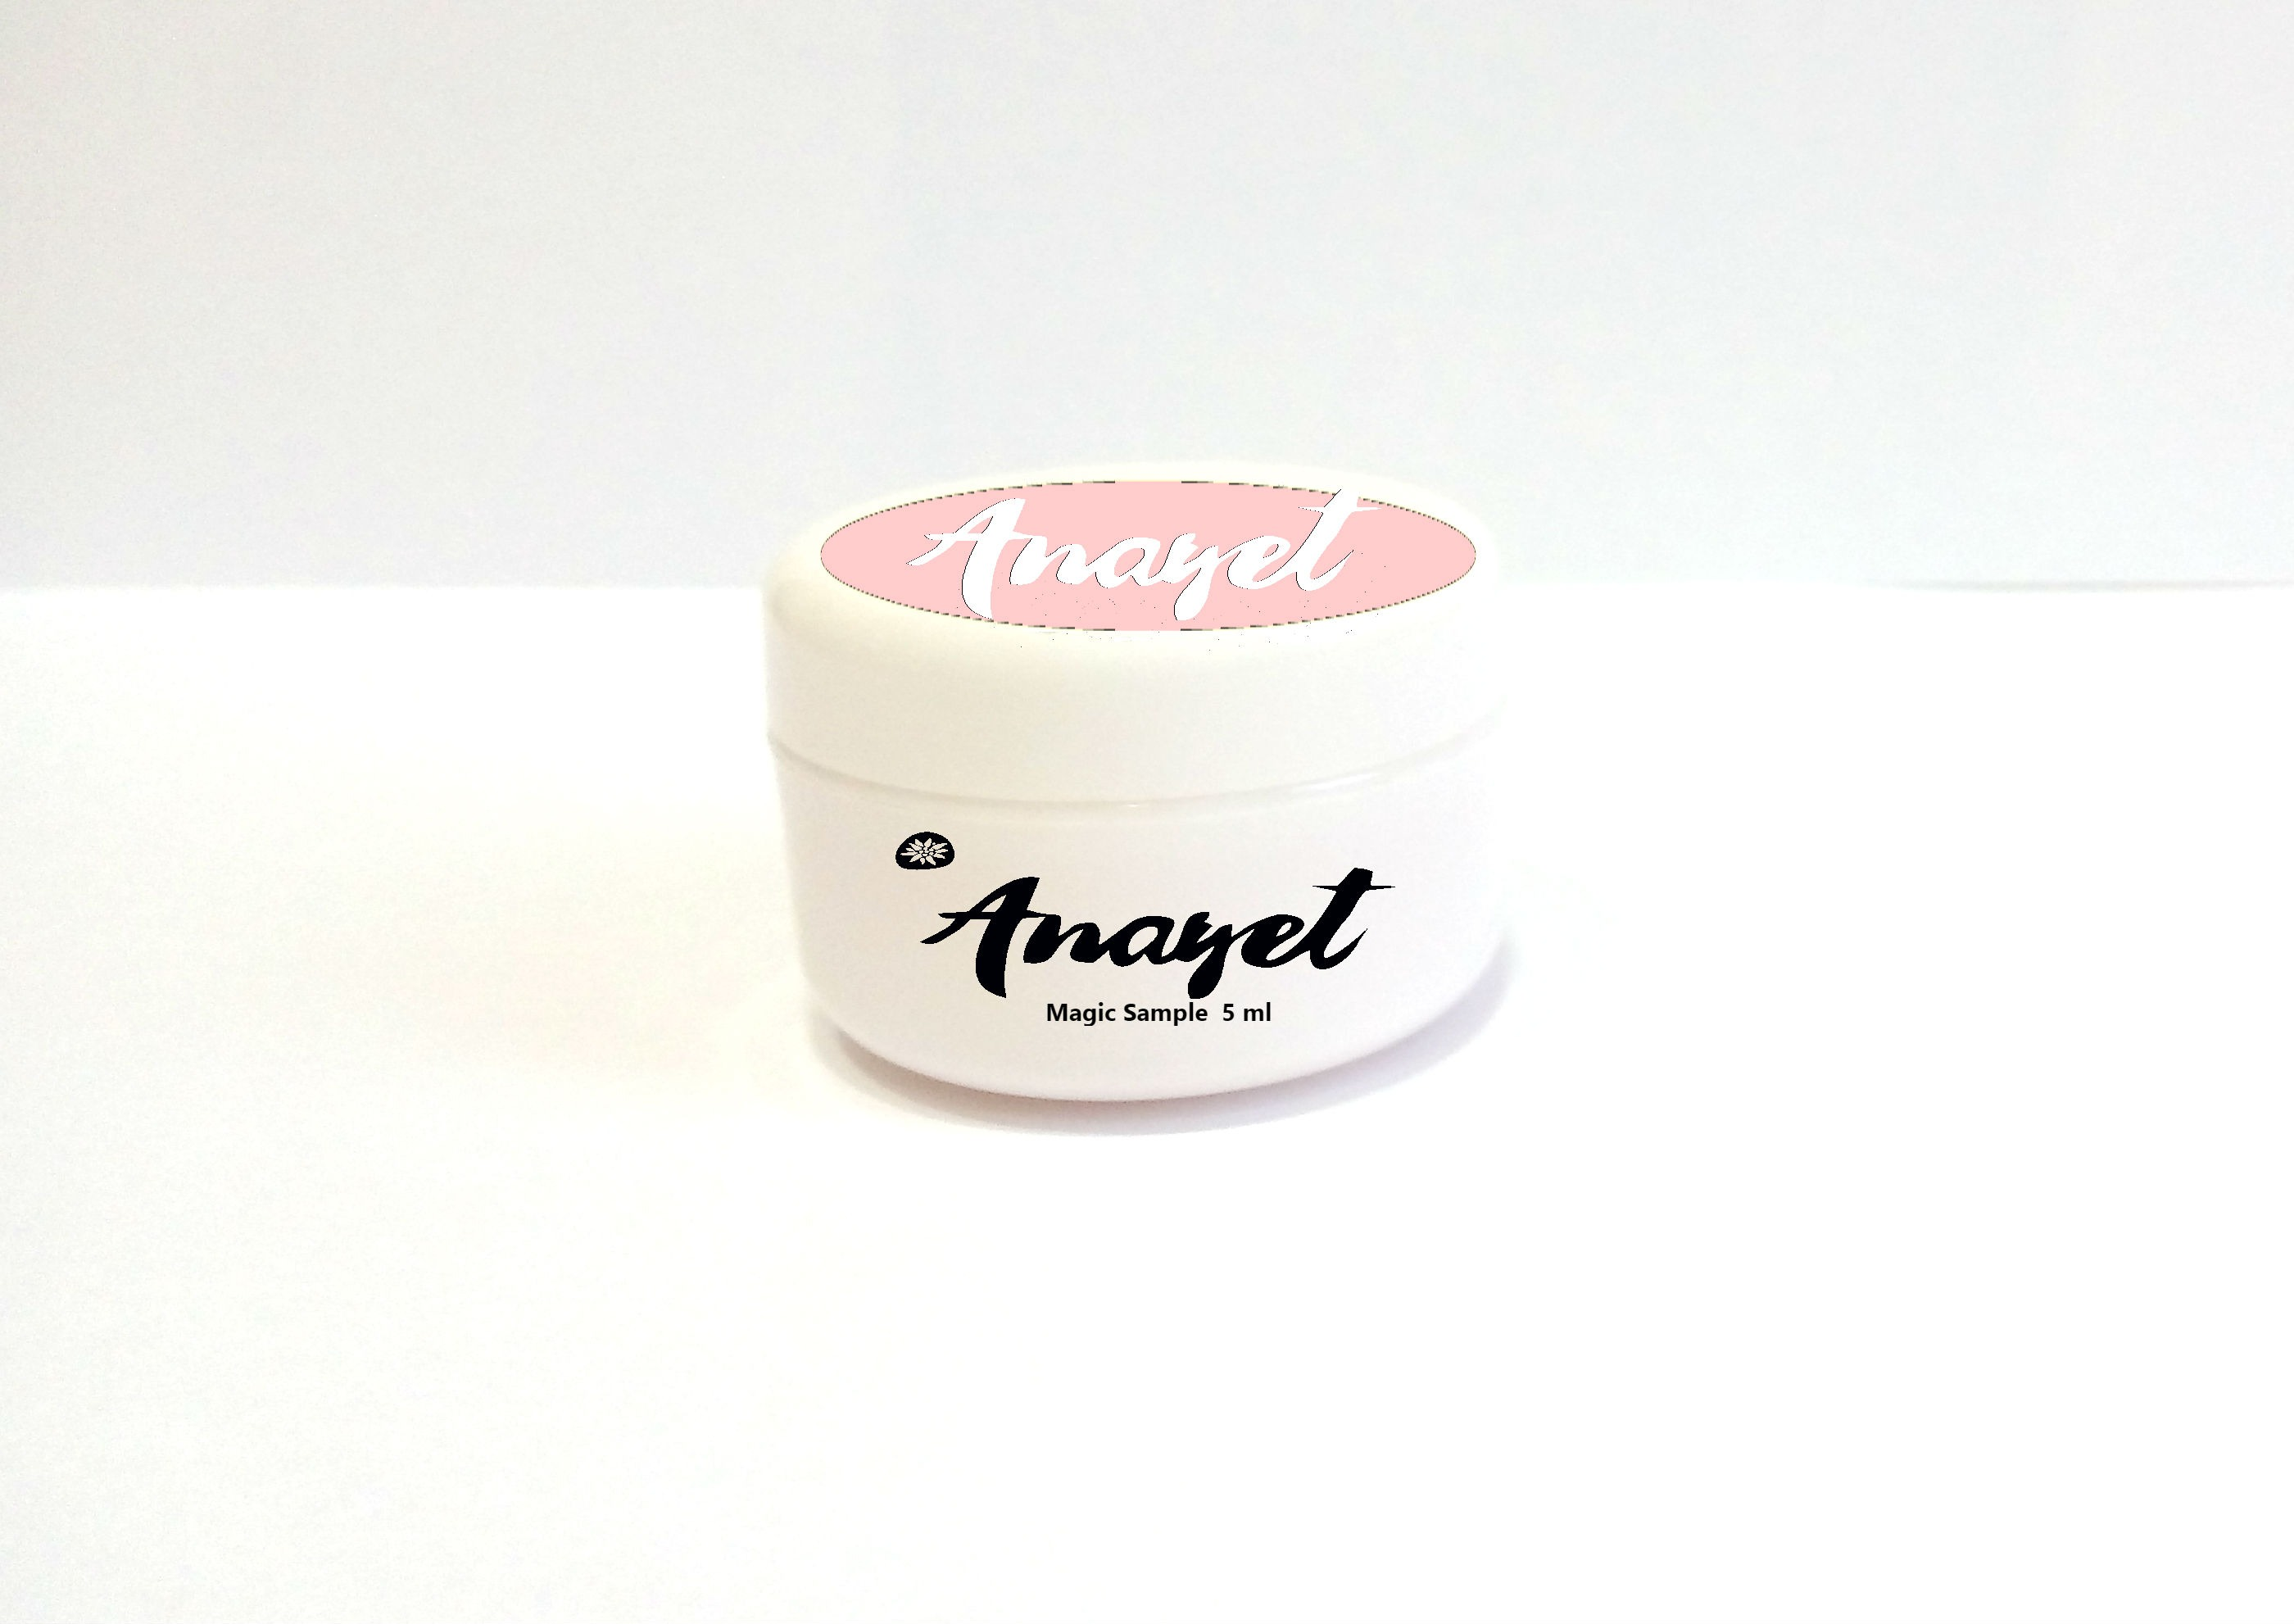 Magic Sample Anayet 5 ml